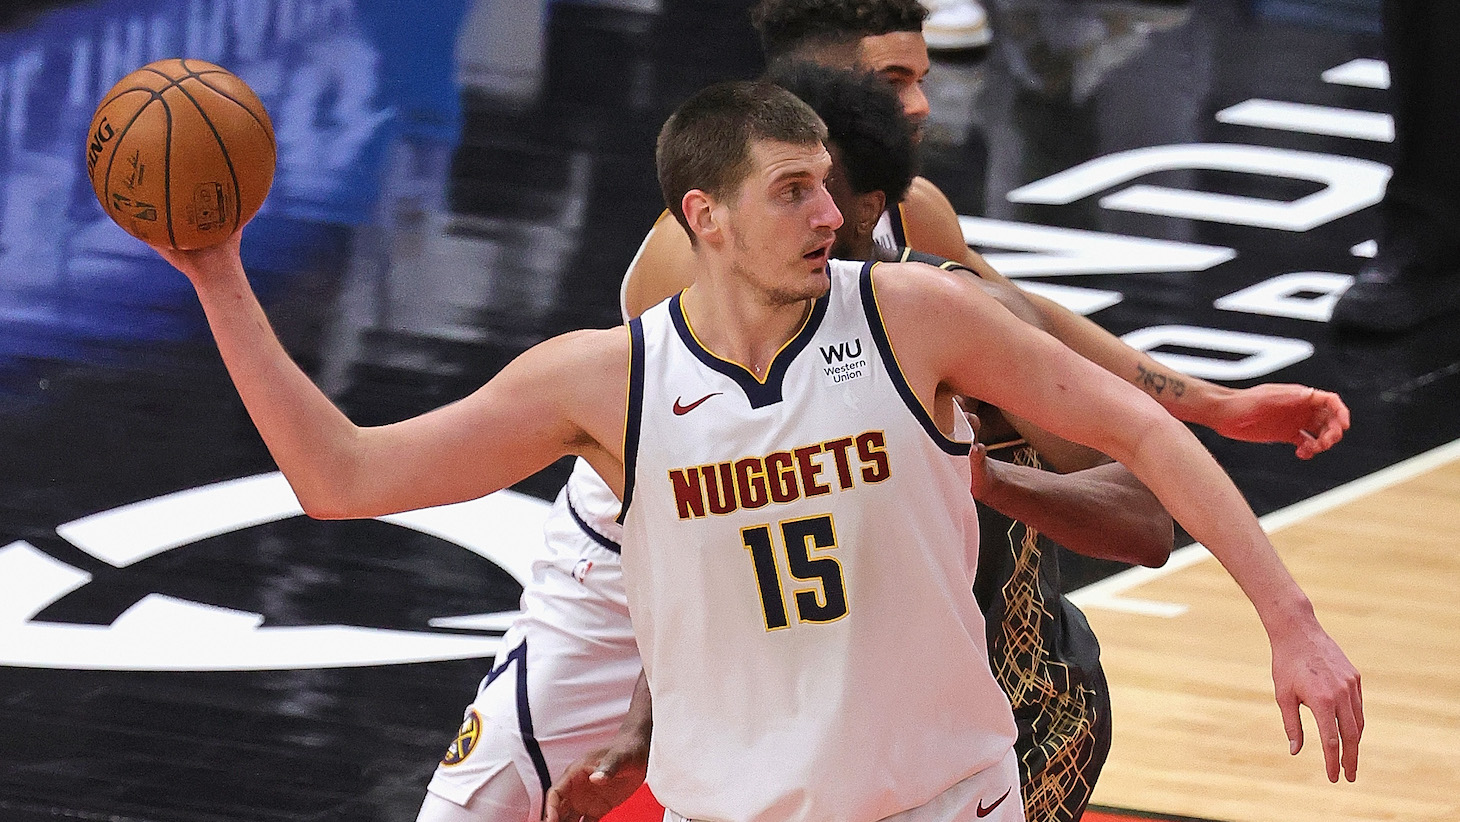 CHICAGO, ILLINOIS - MARCH 01: Nikola Jokic #15 of the Denver Nuggets passes downcourt against the Chicago Bulls at the United Center on March 01, 2021 in Chicago, Illinois. NOTE TO USER: User expressly acknowledges and agrees that, by downloading and or using this photograph, User is consenting to the terms and conditions of the Getty Images License Agreement. (Photo by Jonathan Daniel/Getty Images)